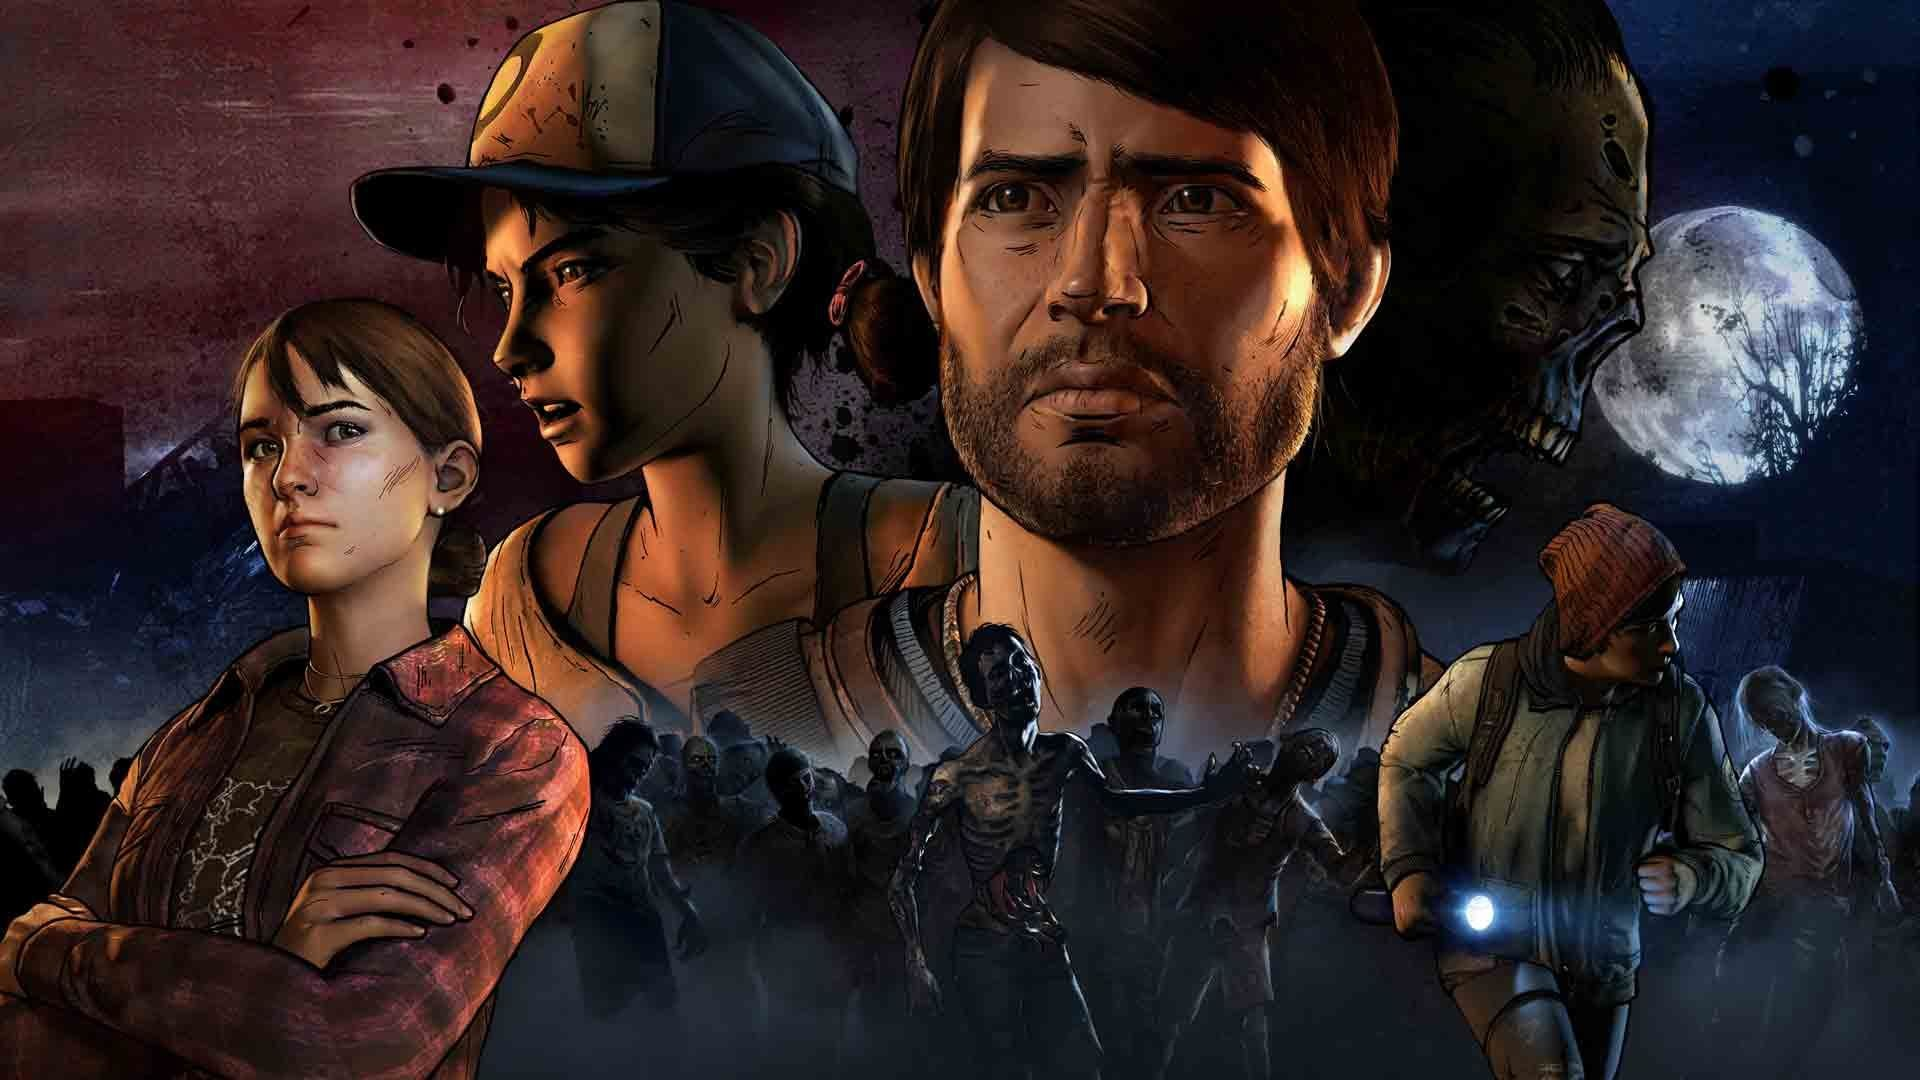 PAX East 2017: Telltale Games' The Walking Dead: A New Frontier Episode 3  Release Date Announced – The Walking Dead: A Telltale Game Series — Season  Three …